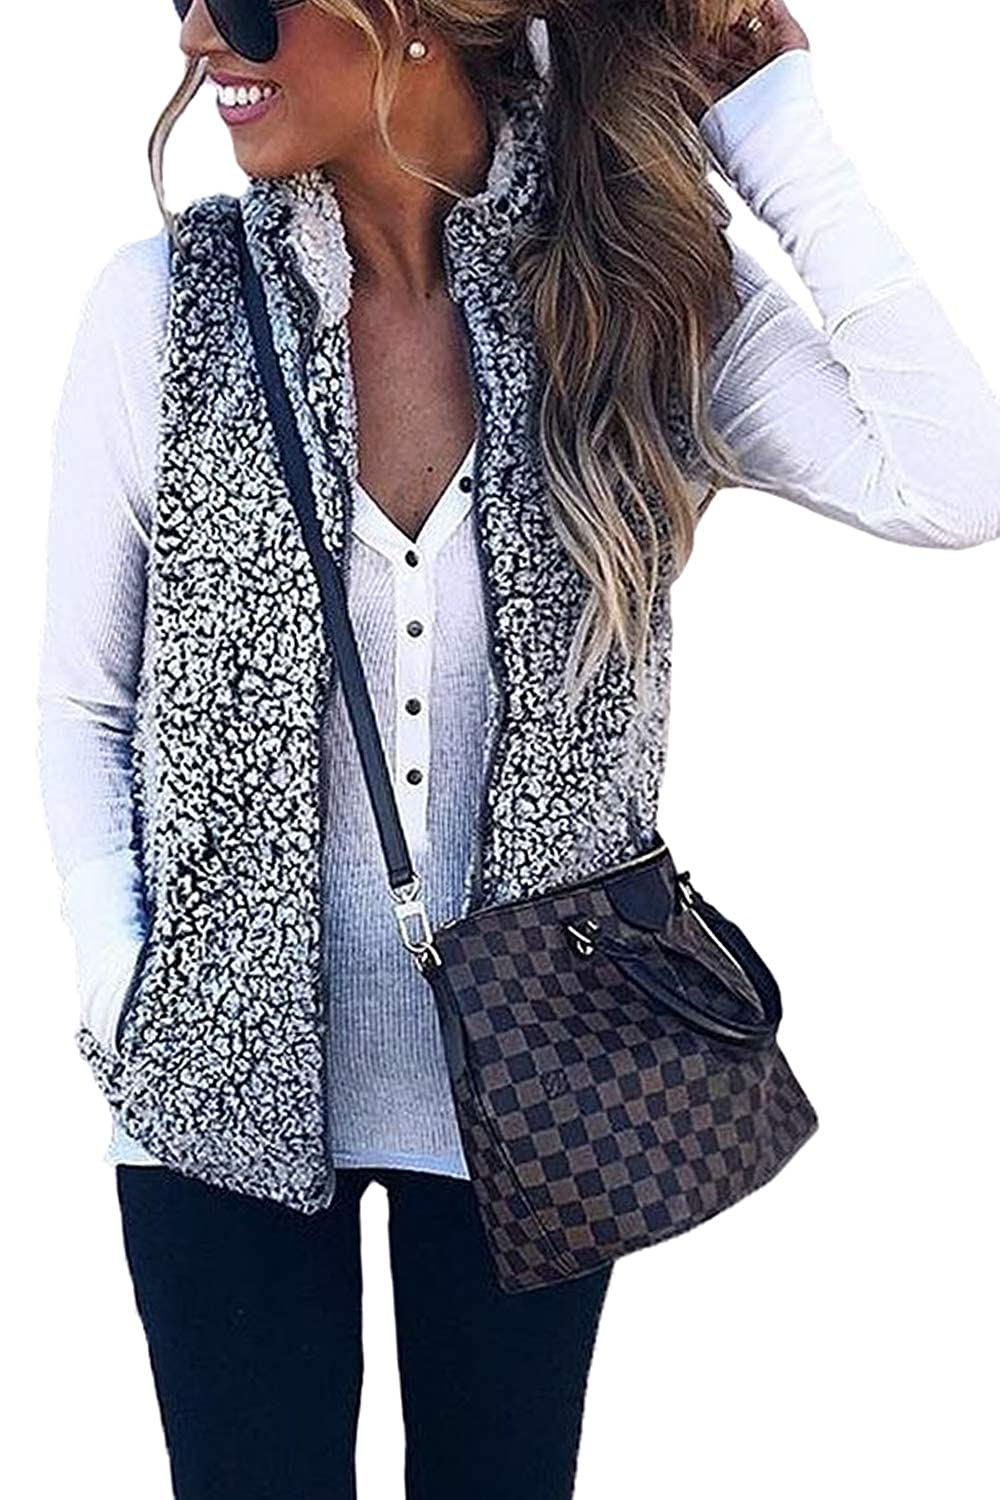 Assivia Women's Zip up Faux Fur Fleece Sherpa Vest Warm Cardigan Waistcoat Pockets